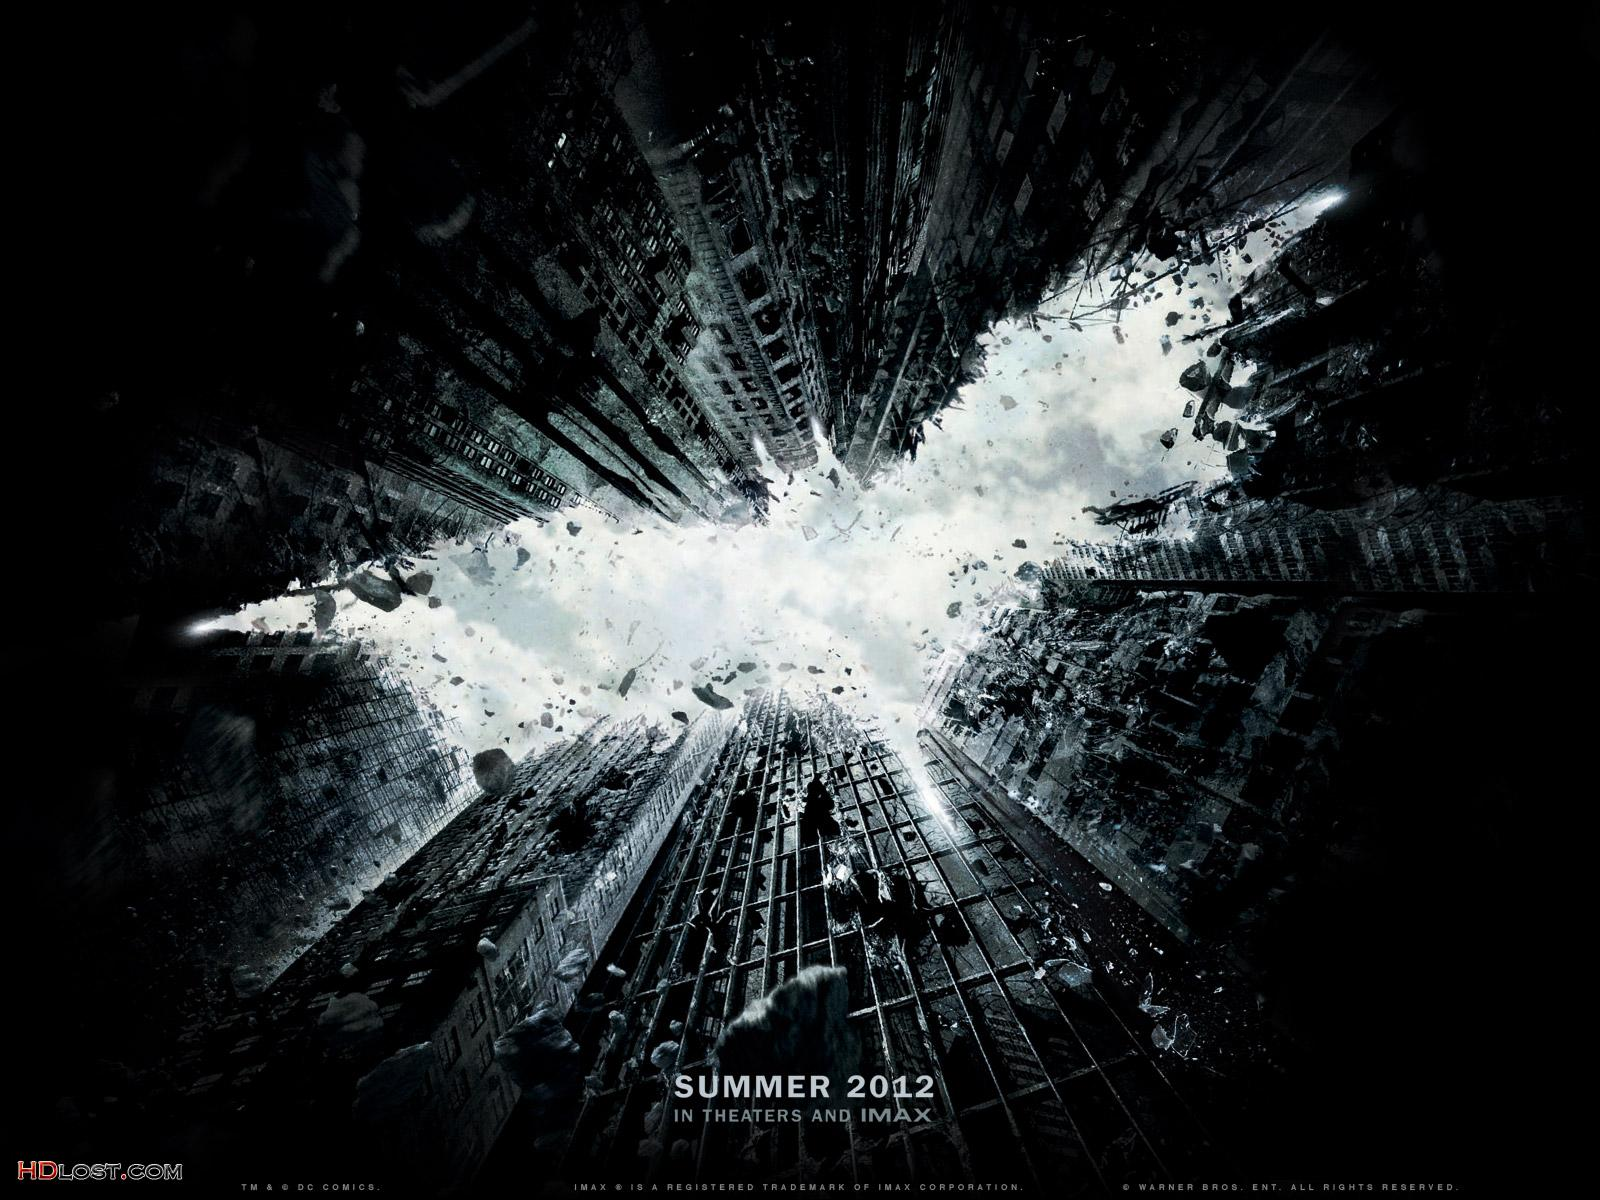 [Cinéma] Nouveau trailer de Batman : The Dark Knight Rises